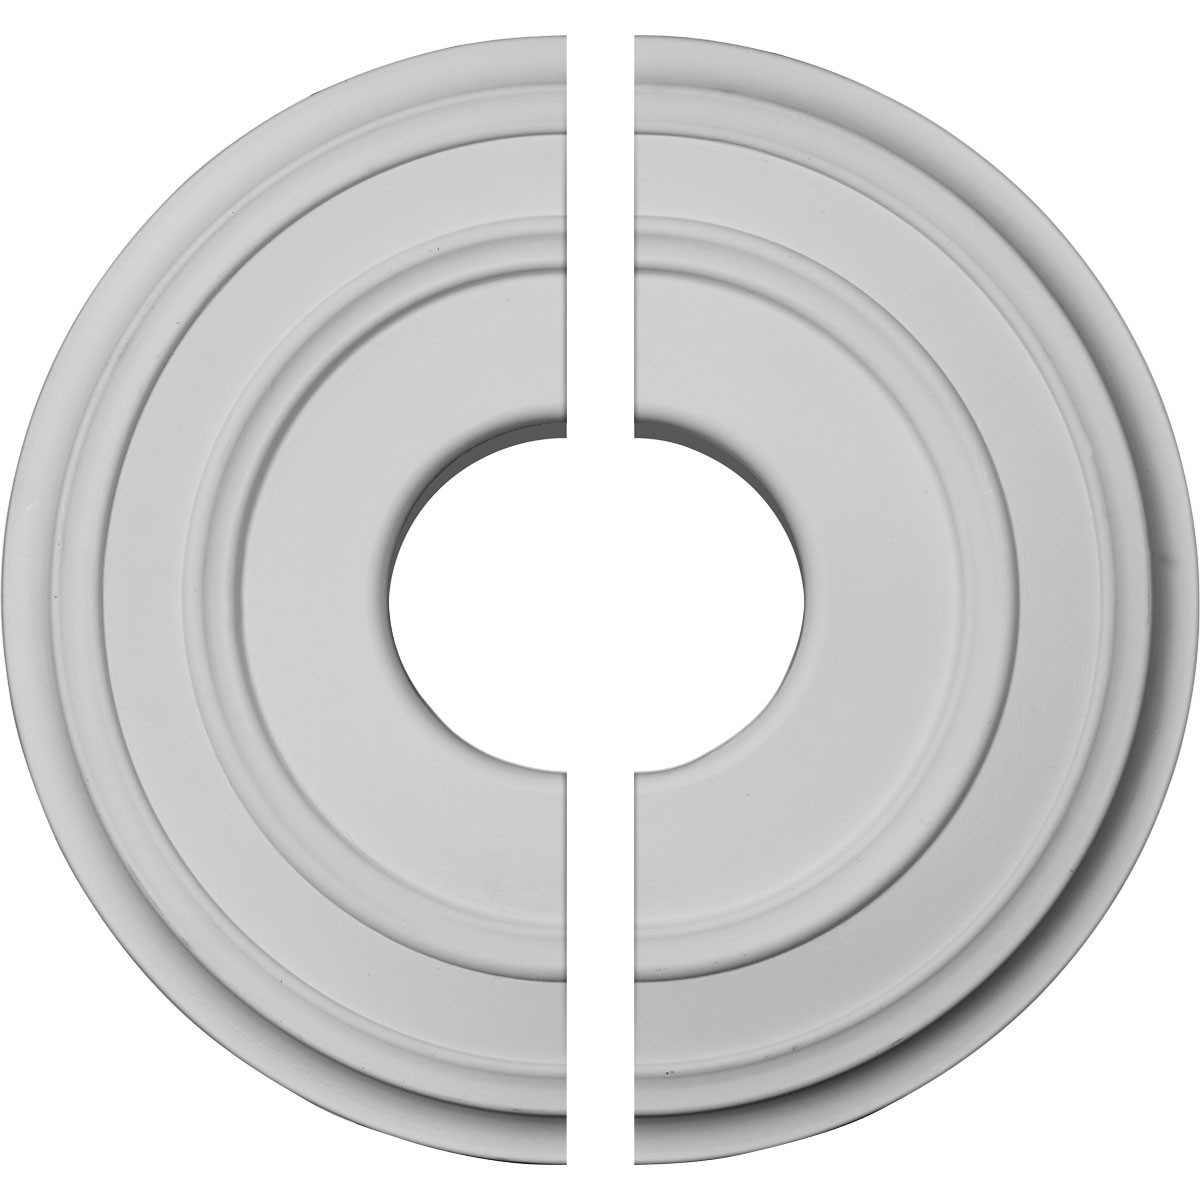 """EM-CM12CL2 - 12 3/8""""OD x 4""""ID x 1 1/8""""P Classic Ceiling Medallion, Two Piece (Fits Canopies up to 7 1/4"""")"""